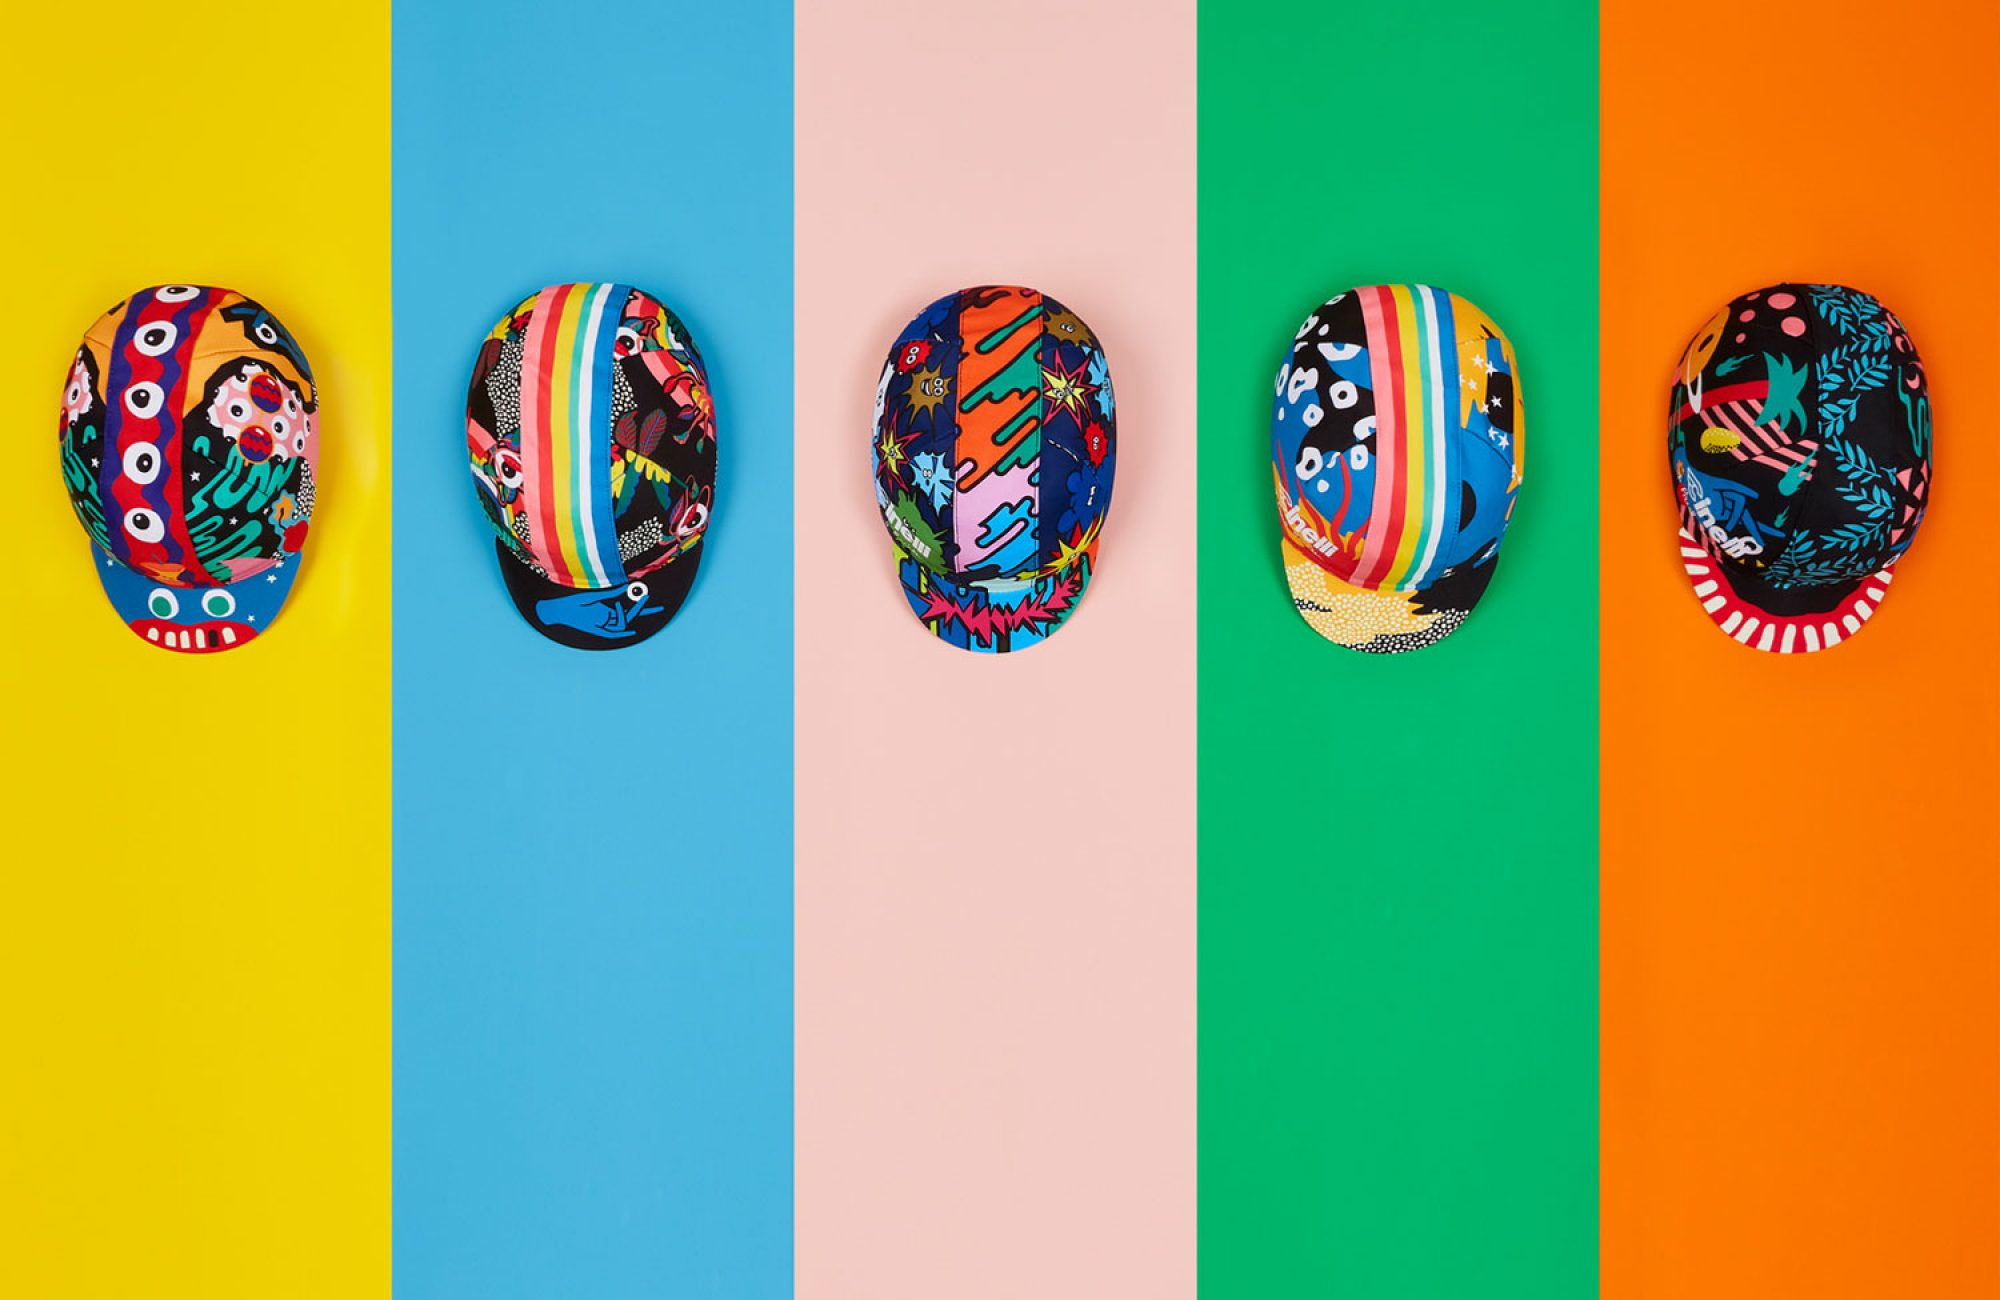 Paul-Smith-Cinelli-Cycling-Caps-Teaser